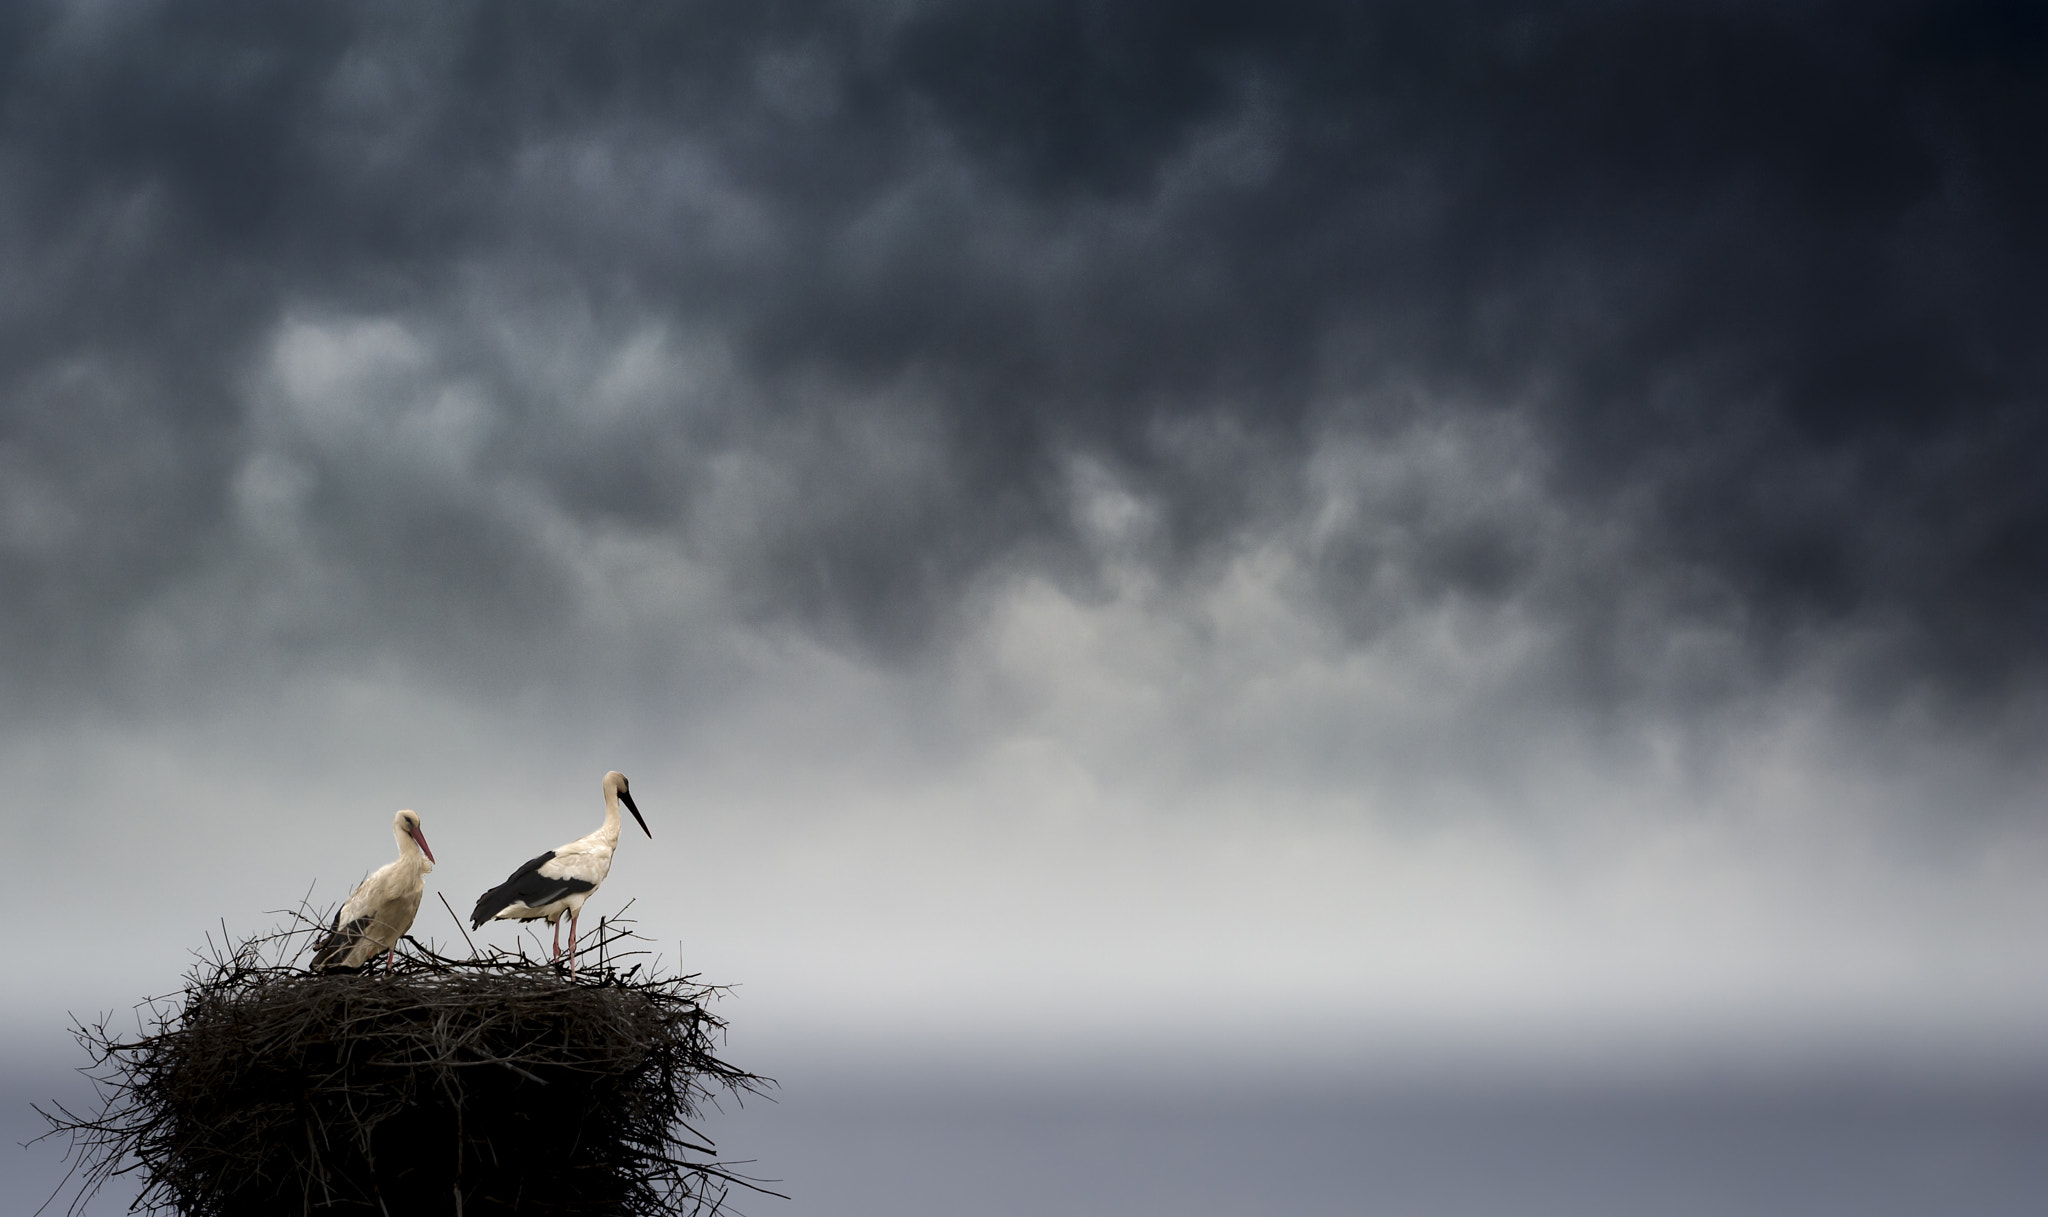 Photograph Storks by Hani Latif Zaloum on 500px